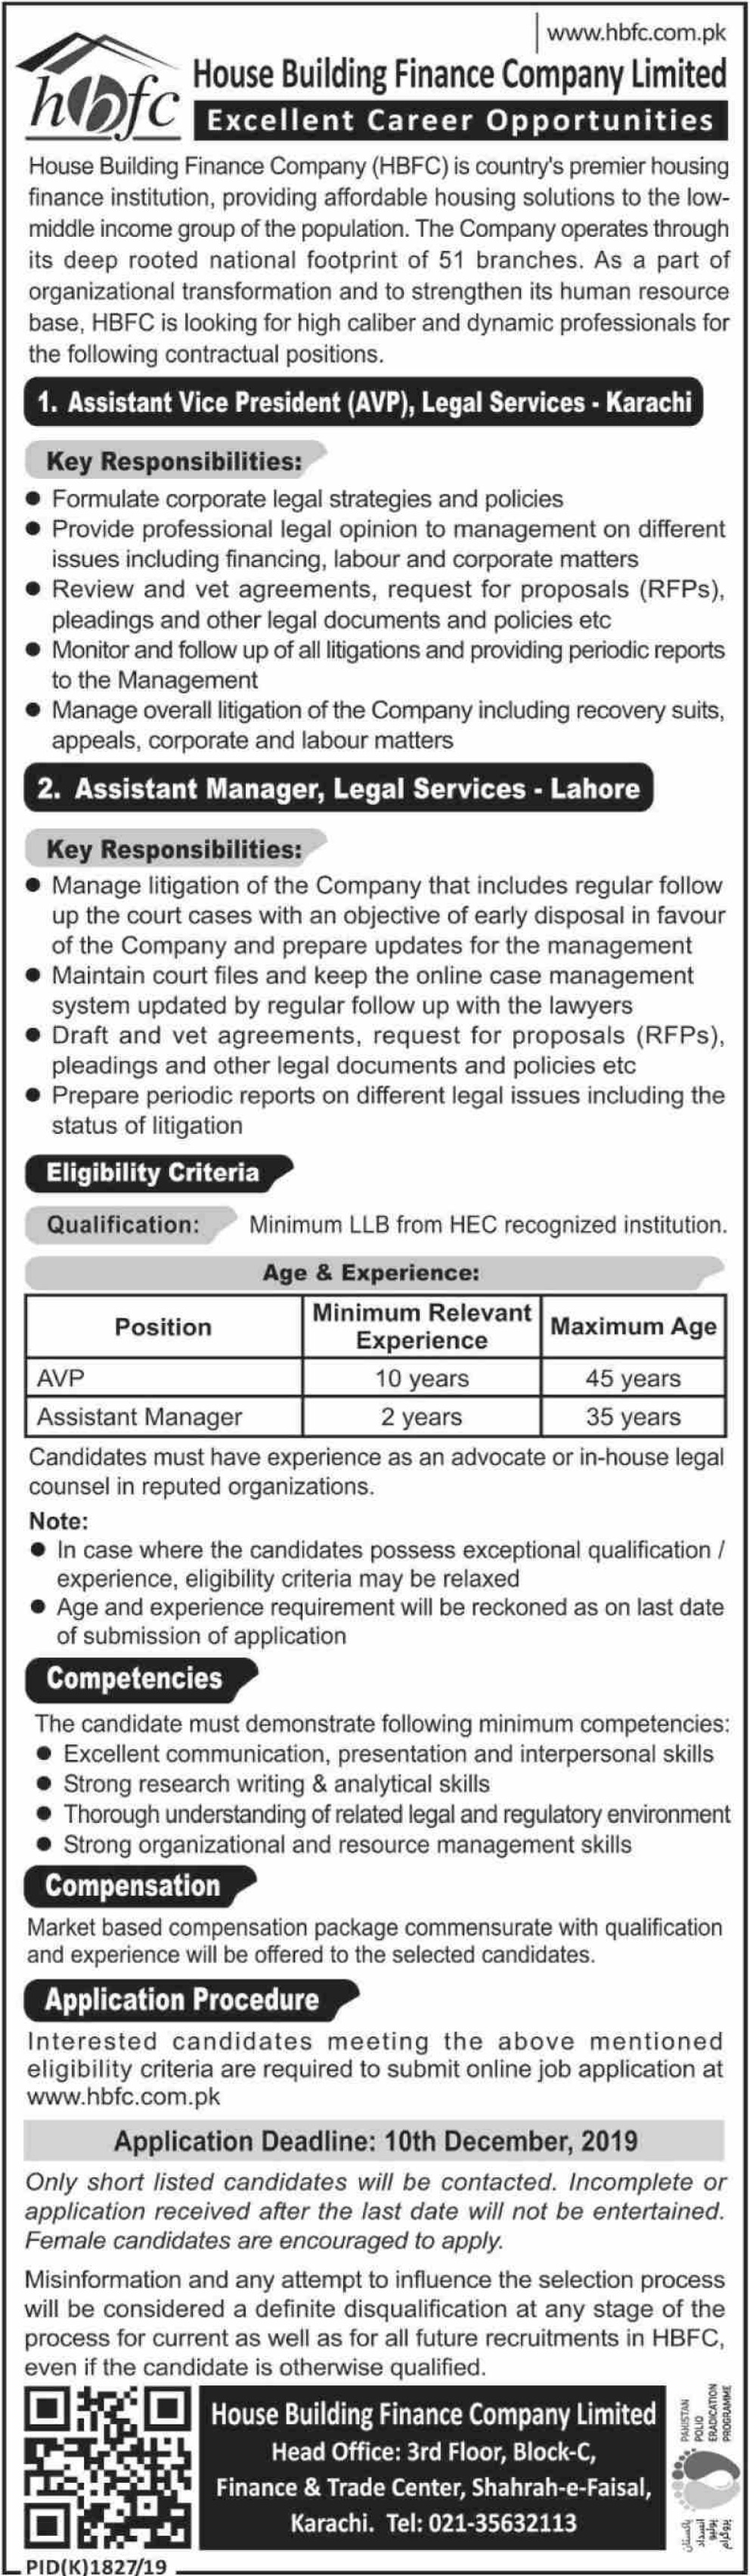 HBFC Jobs 2019 House Building Finance Company Limited